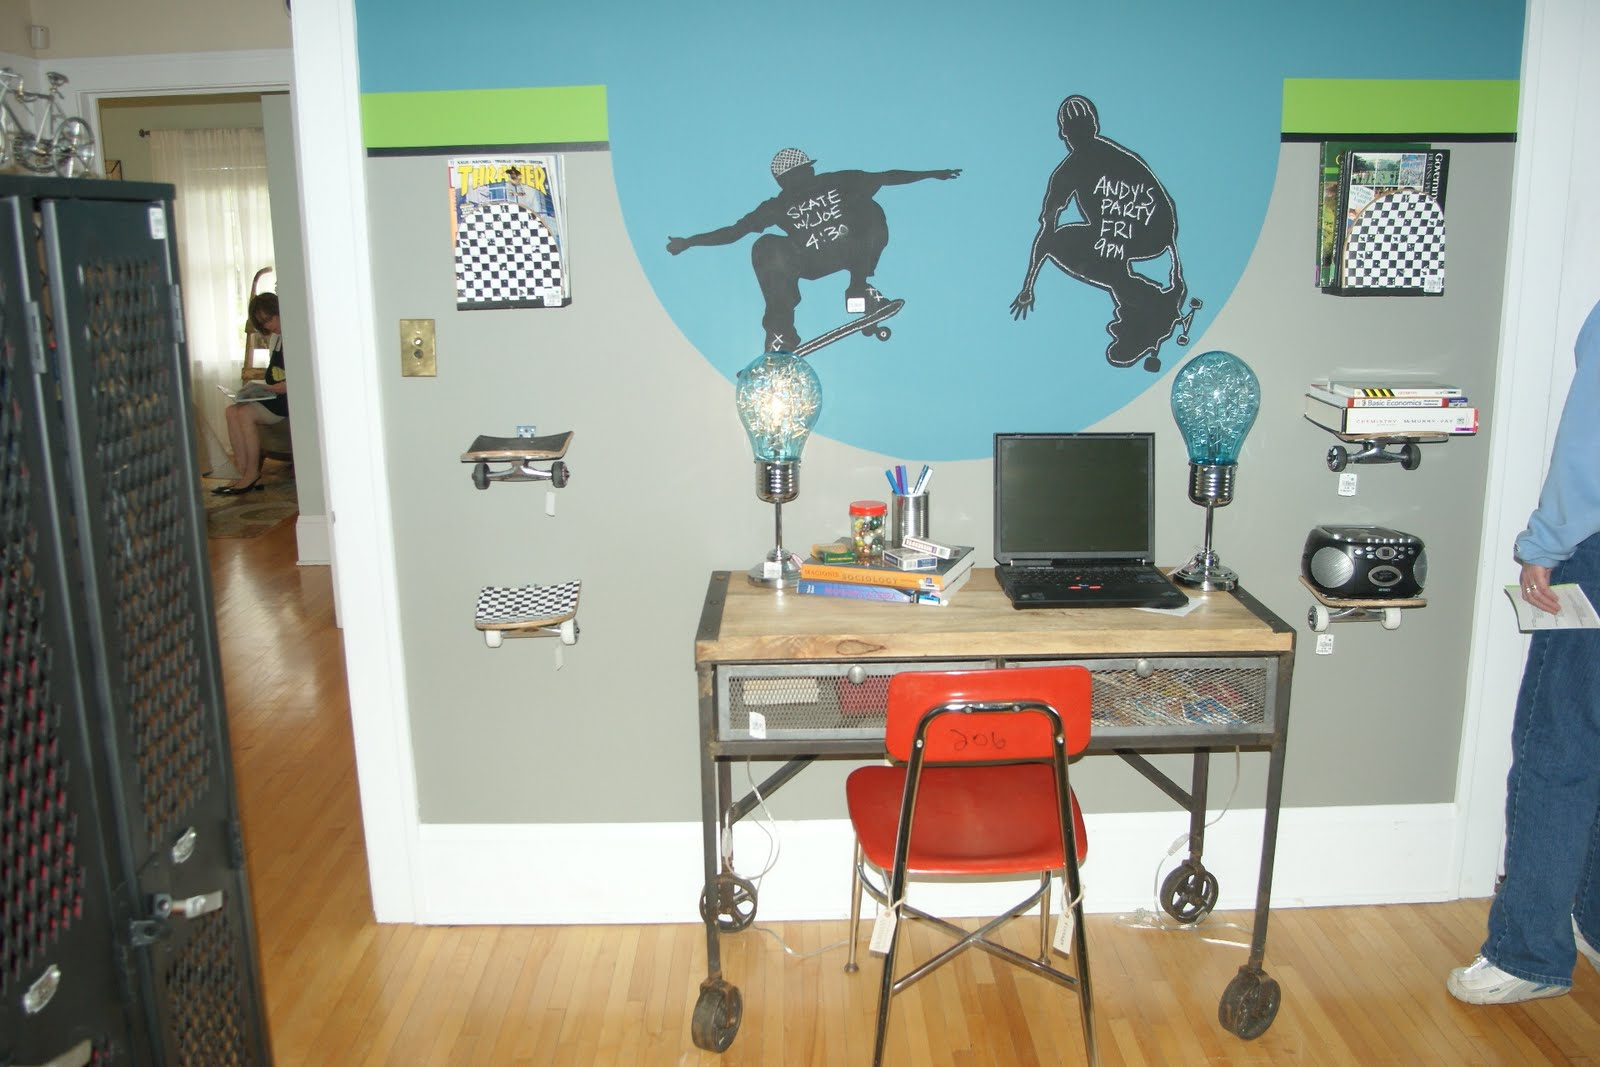 B a t 39 s crafts my 100th post bachman 39 s summer idea home highlights 2011 - Skateboard themed bedroom ...